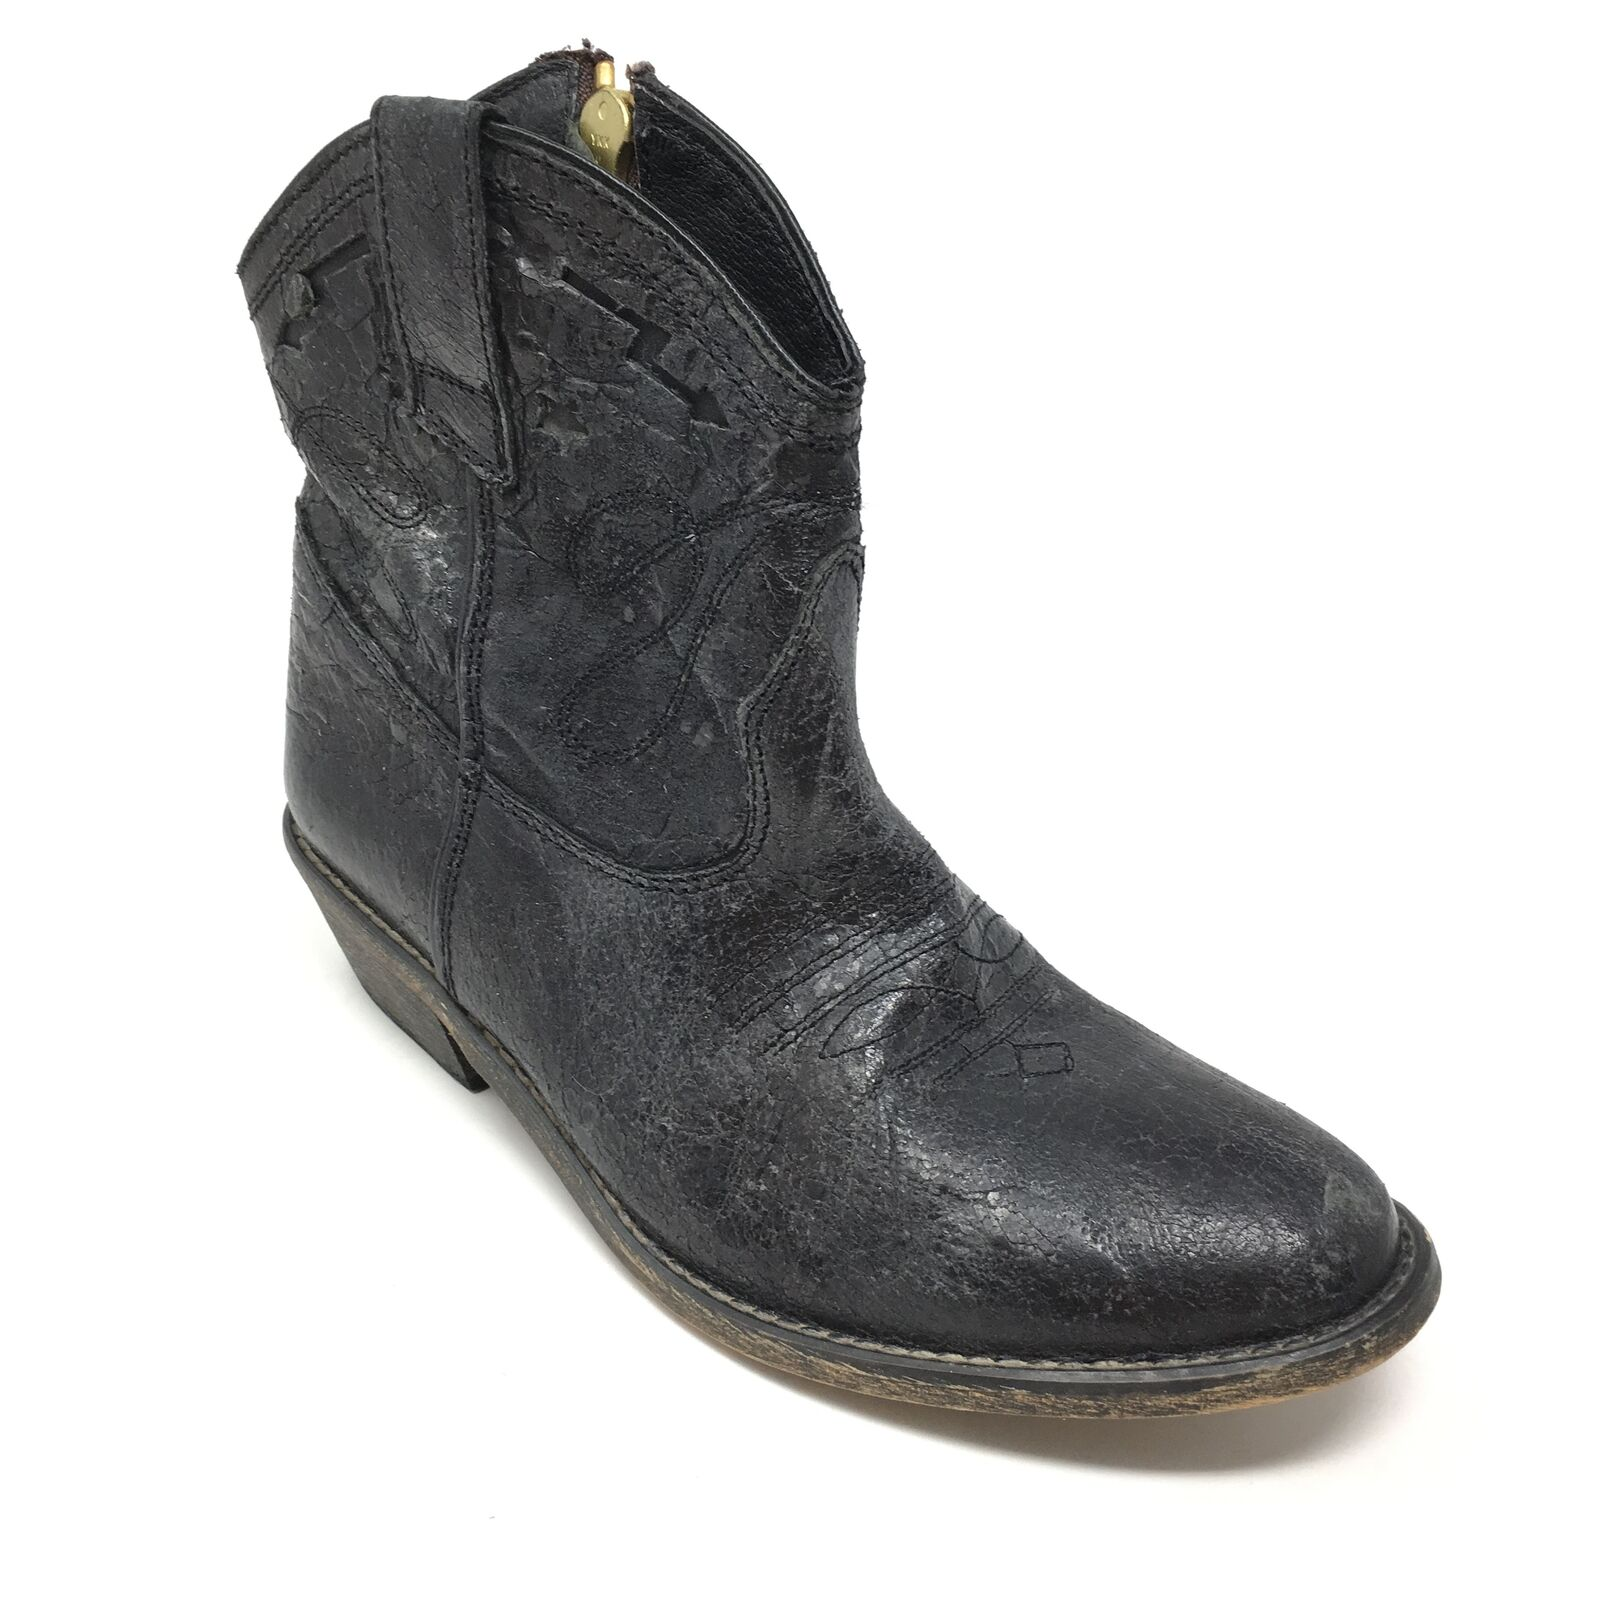 Women's Steve Madden Vestted Western Ankle Boots shoes Size 6.5M Black Zip Up P11